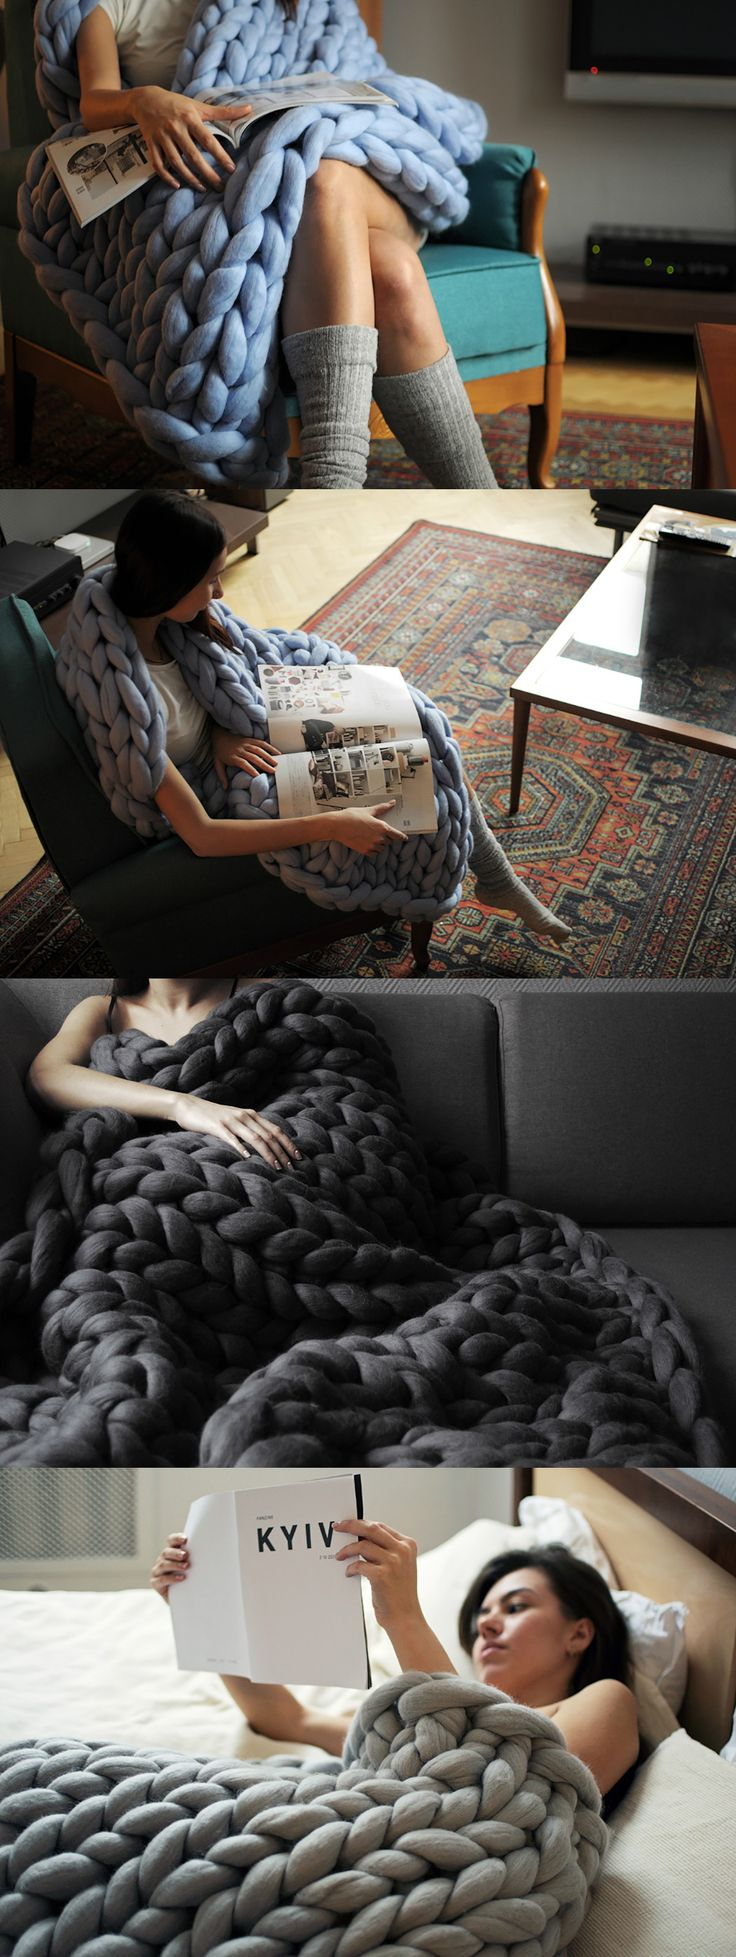 I mean chunky knit! A single stitch of the Ohhio blanket is 3 inches and the blanket's overall thickness is a whopping 2 inches. Made from up to 10 lbs of 100% merino wool, these big stitch blankets give the feeling of weight and warmth to keep you cozy all winter long. DO WANT! #Wool #Blanket #YankoDesign